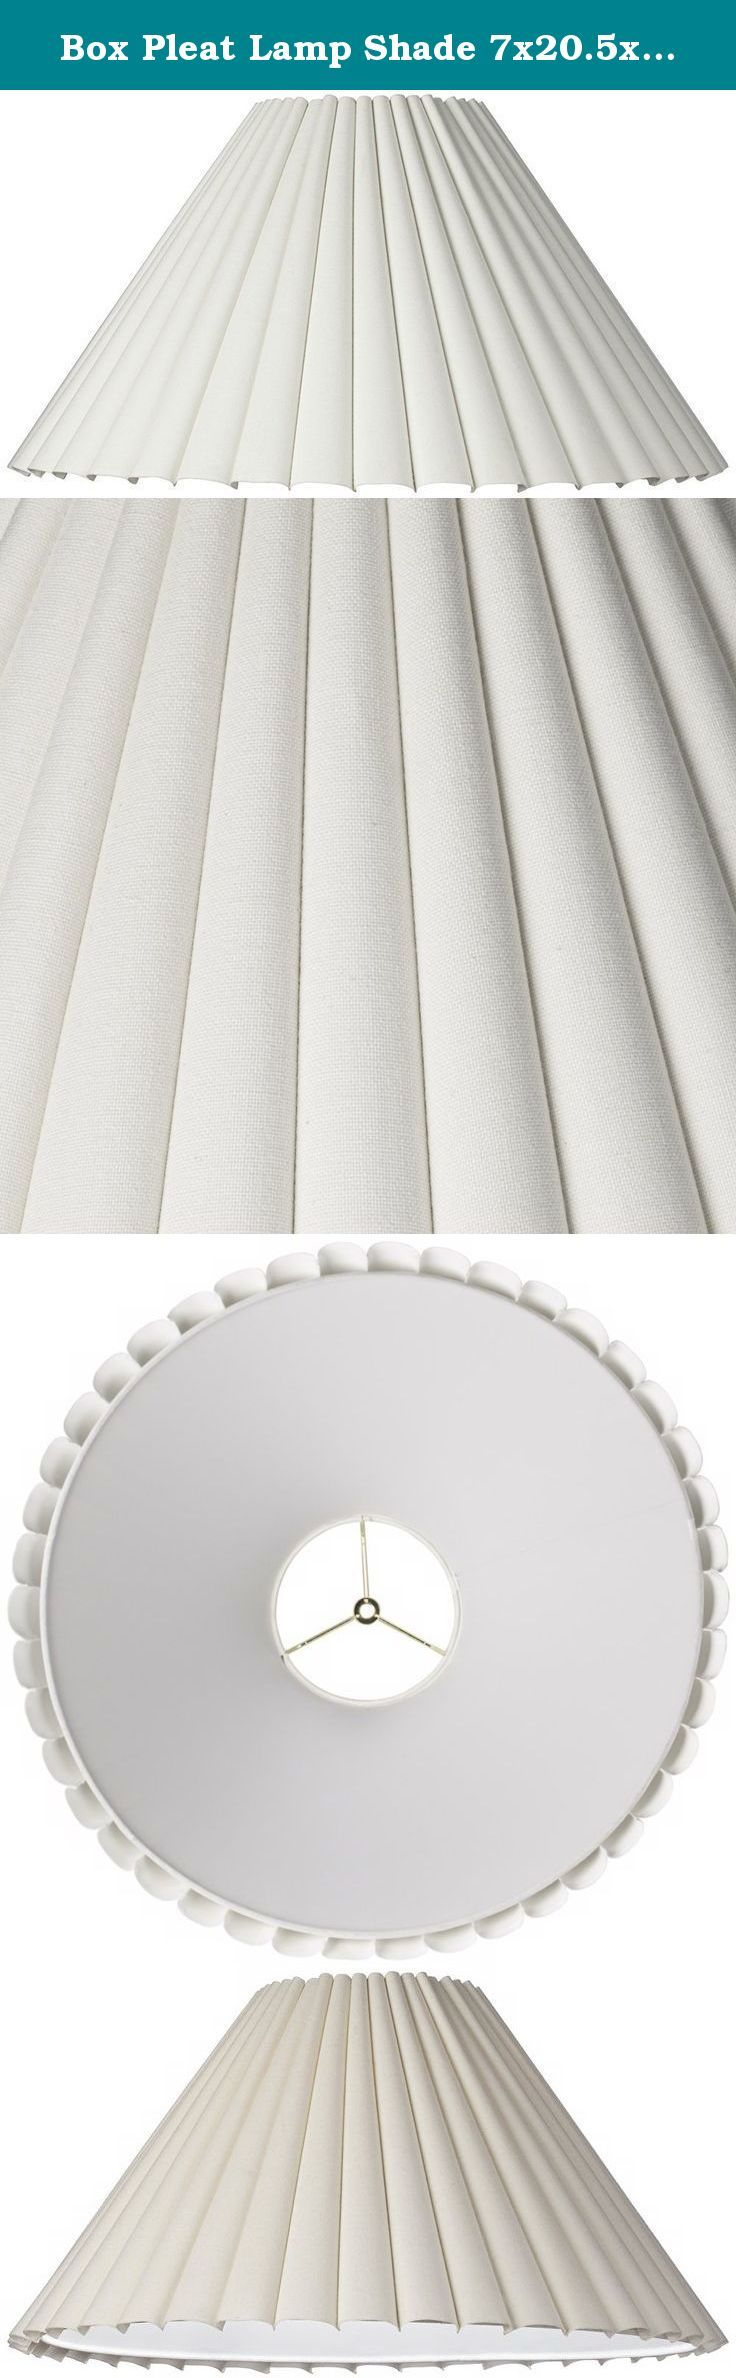 Table lamp harp sizes - Box Pleat Lamp Shade 7x20 5x12 5 Spider This Antique White